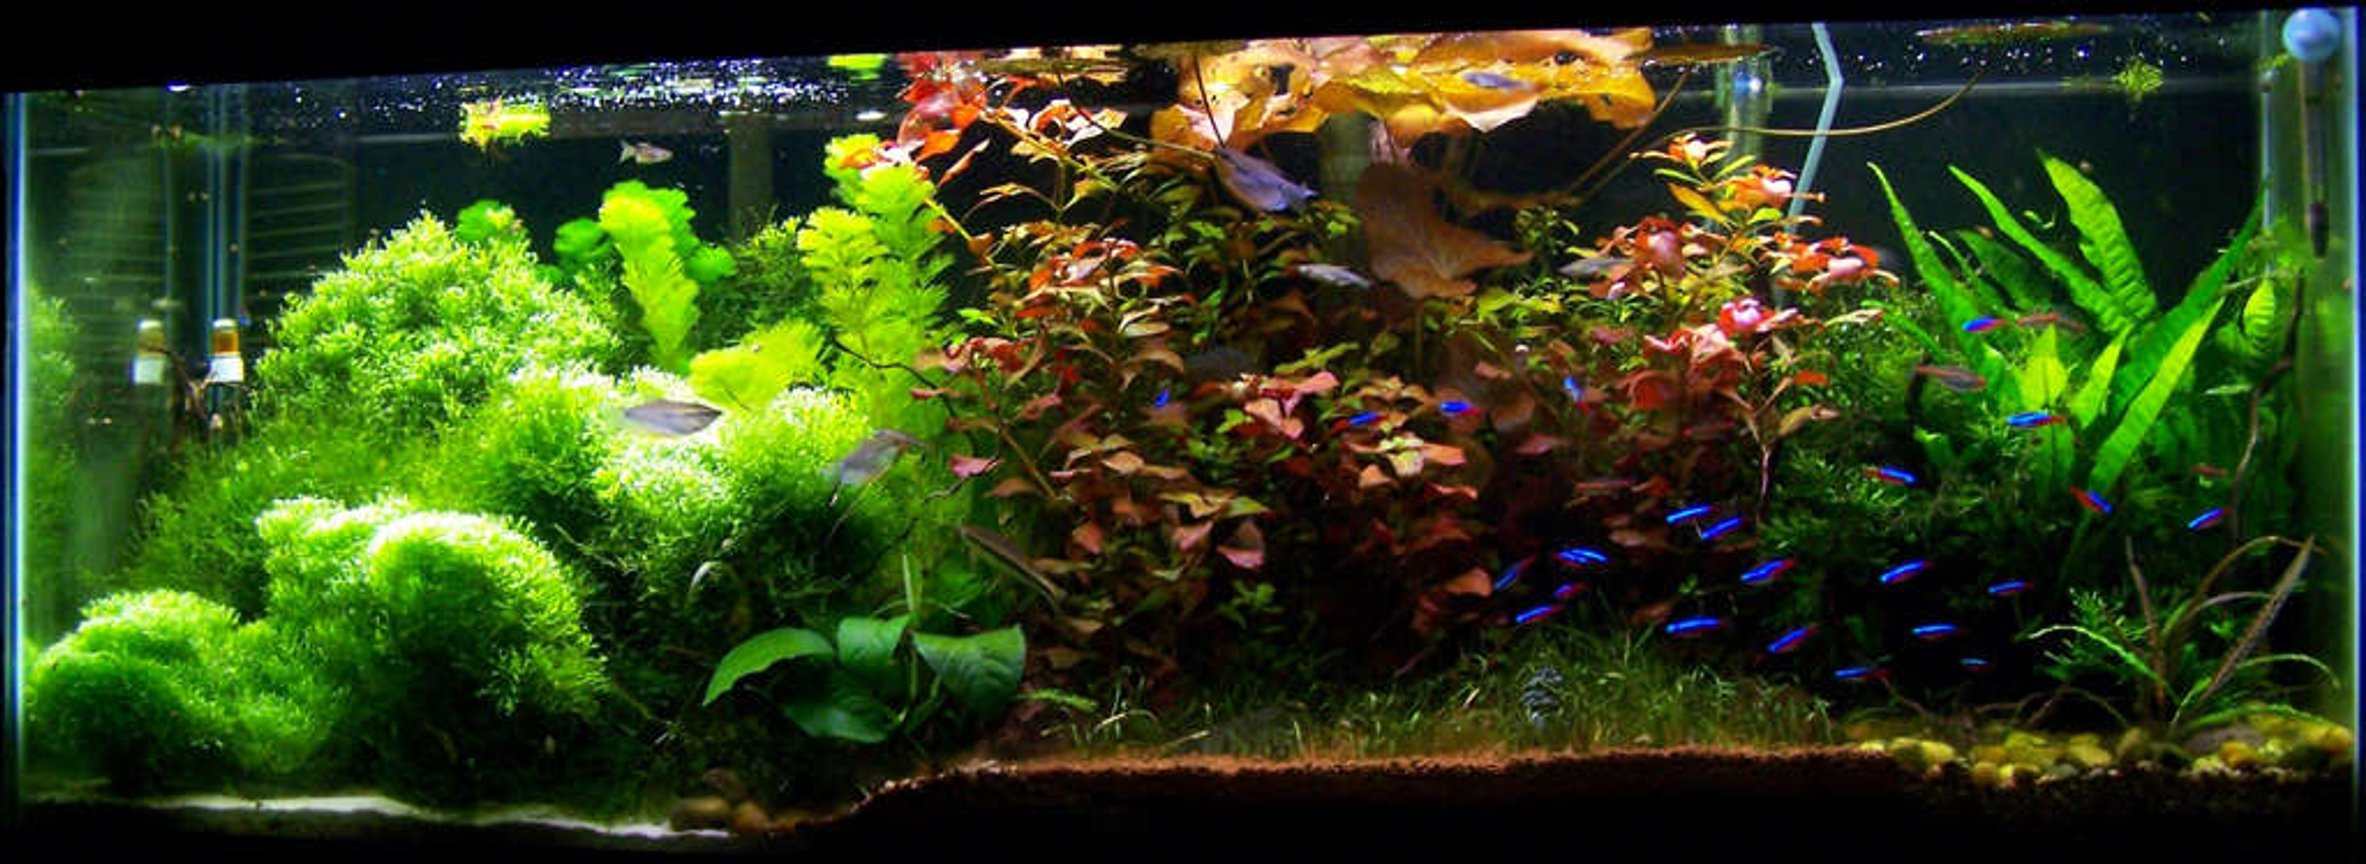 50 gallons planted tank (mostly live plants and fish) - 4 Foot 50 Gallon Tropical community tank.